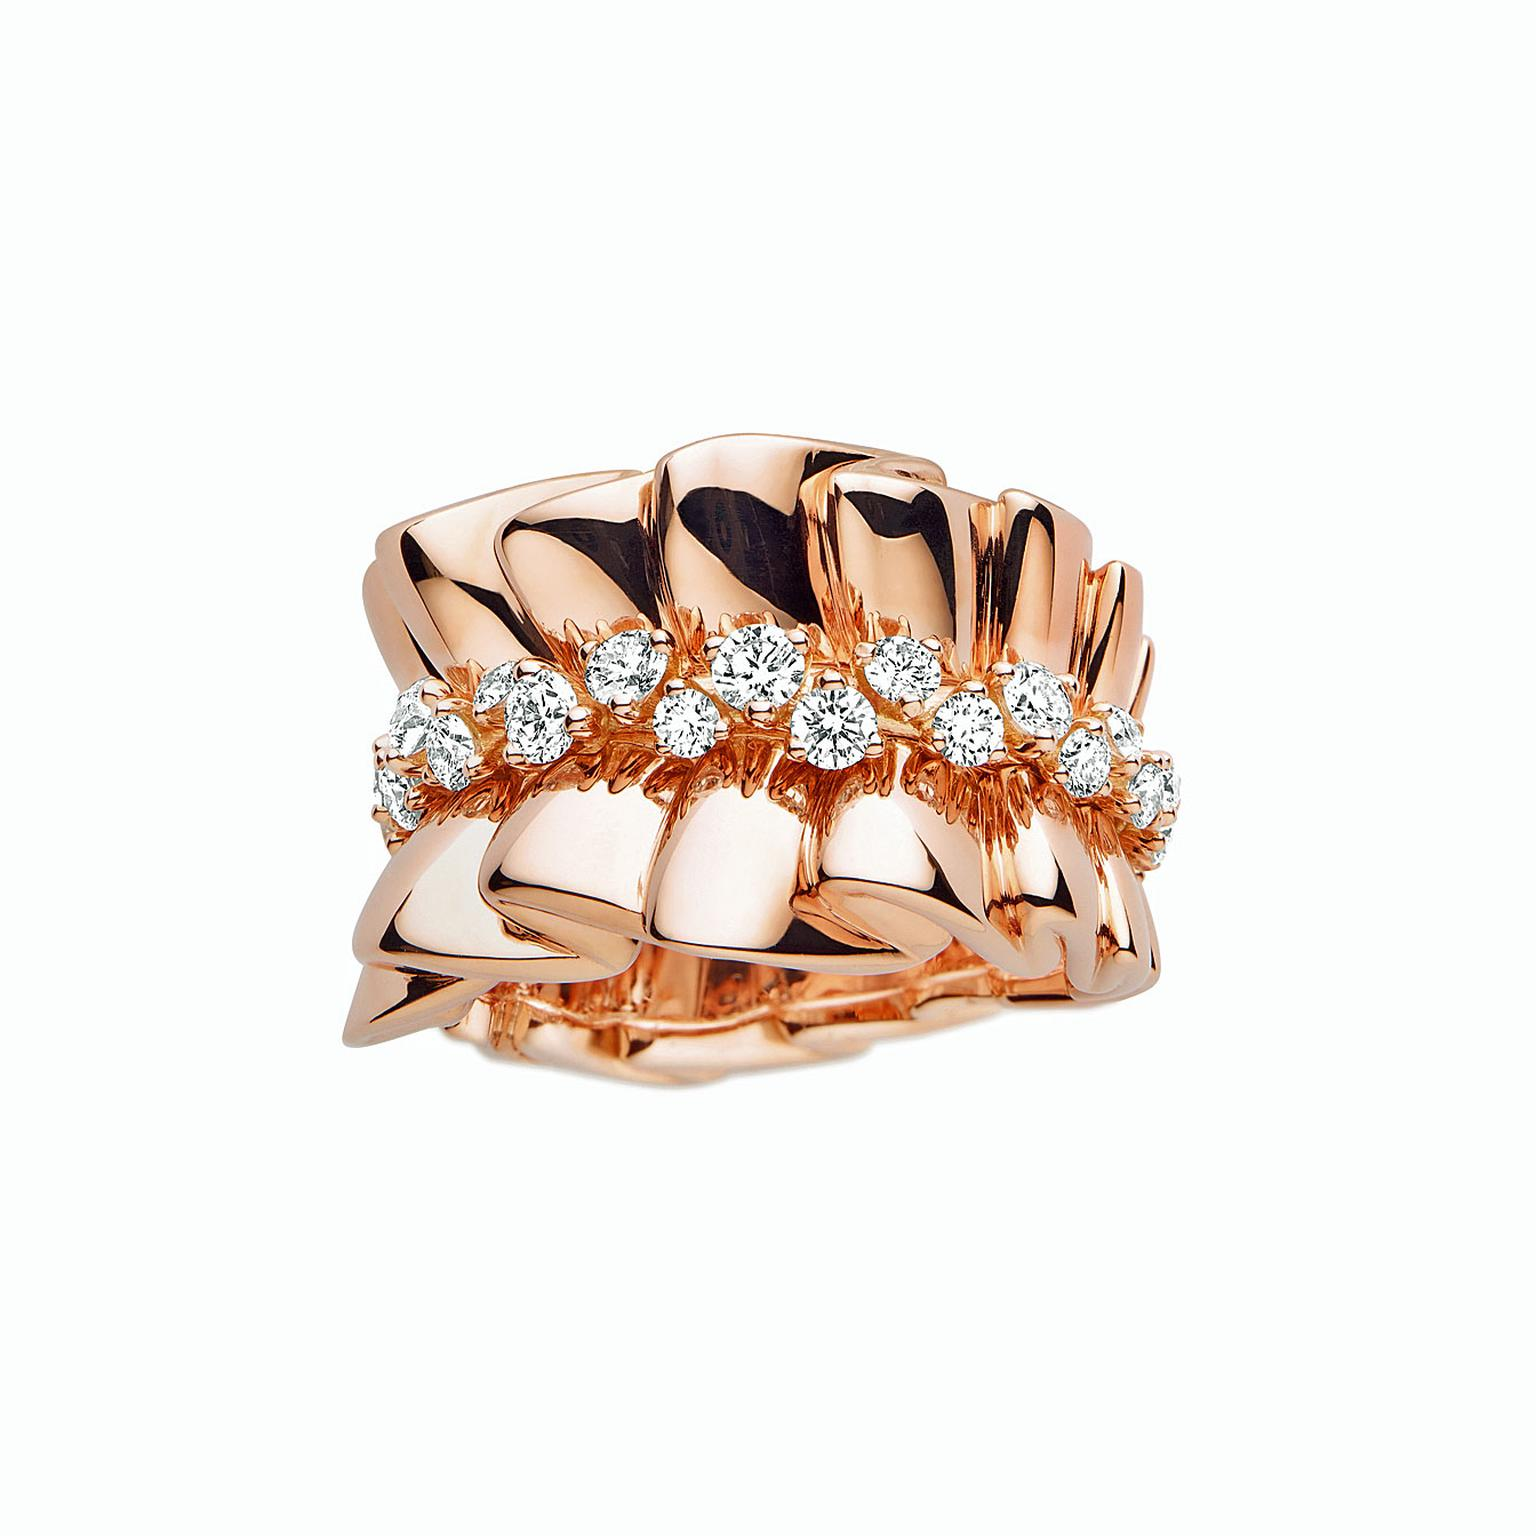 Archi Dior Bar en Corolle Bague rose gold and diamond ring